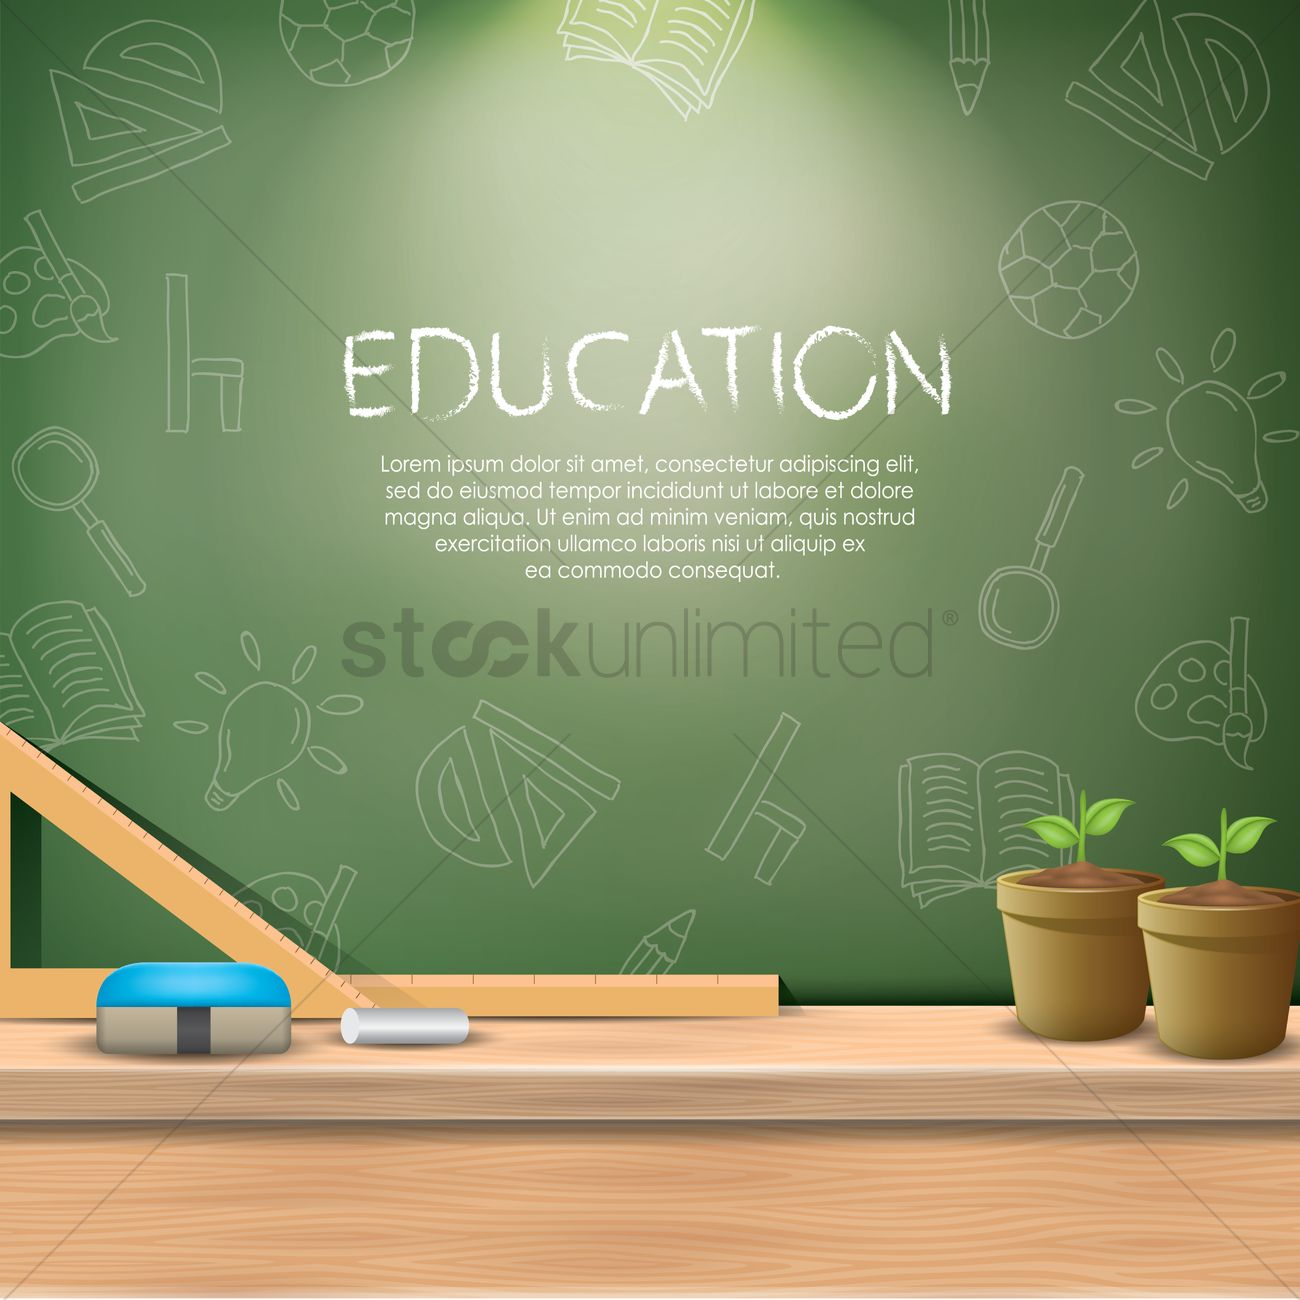 education wallpaper vector image 1821872 stockunlimited